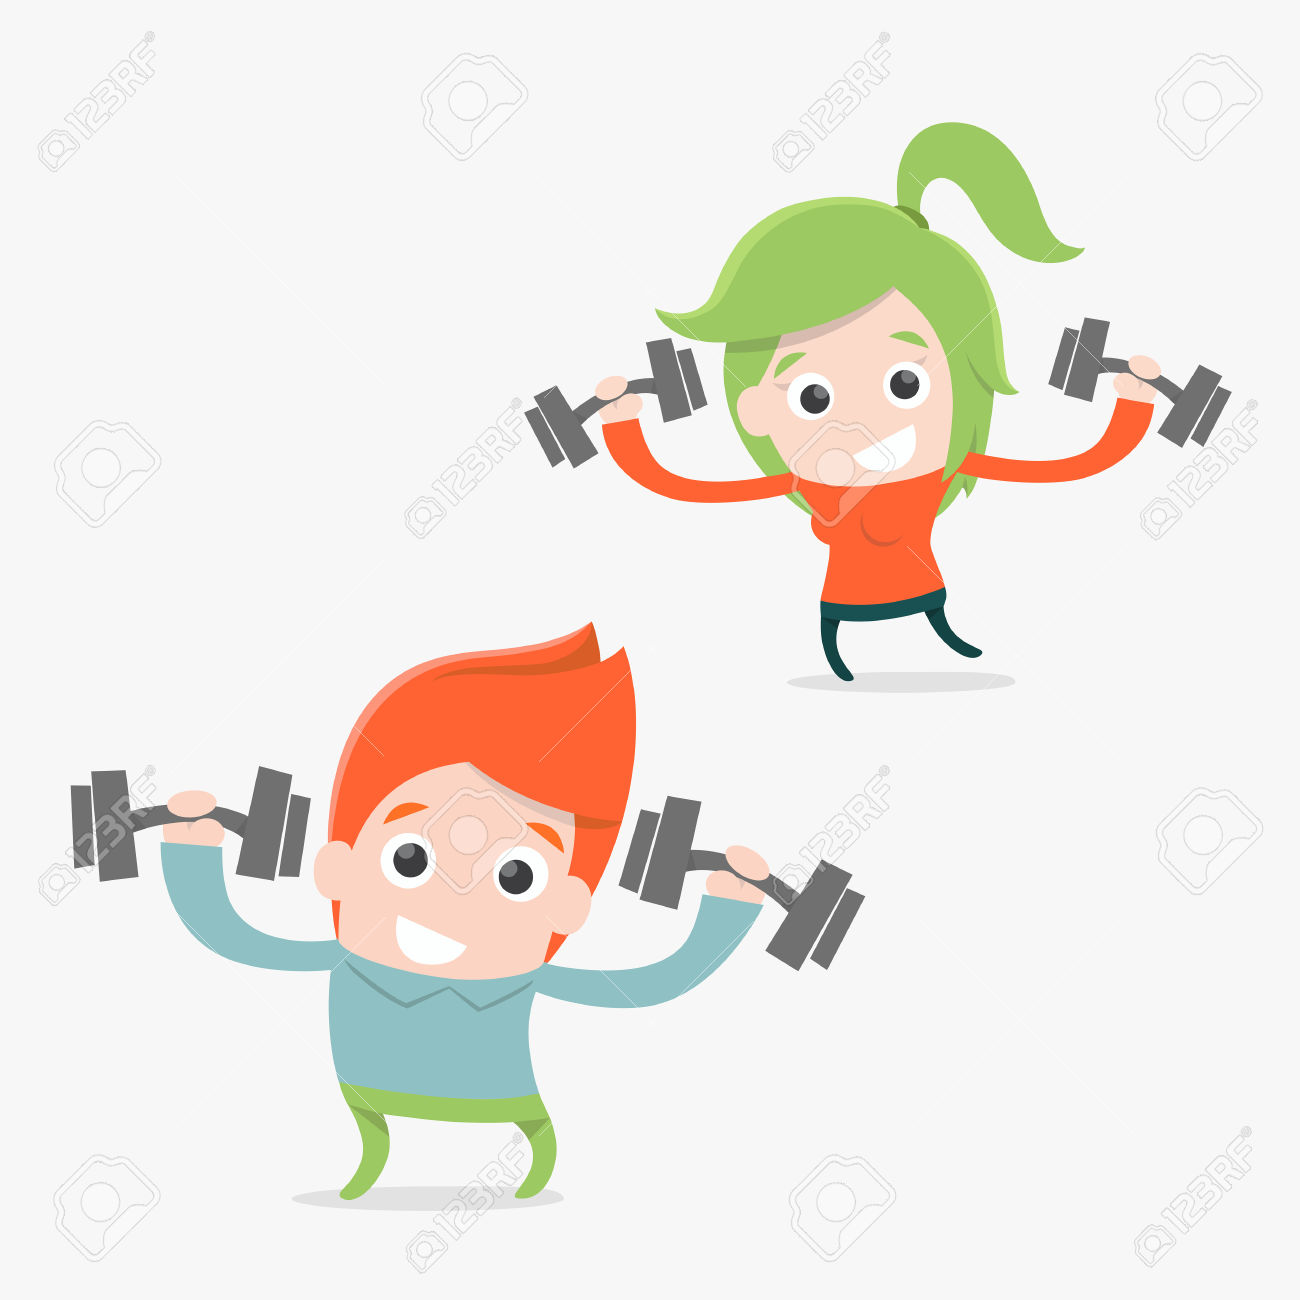 Workout Images Cartoon | Free download on ClipArtMag